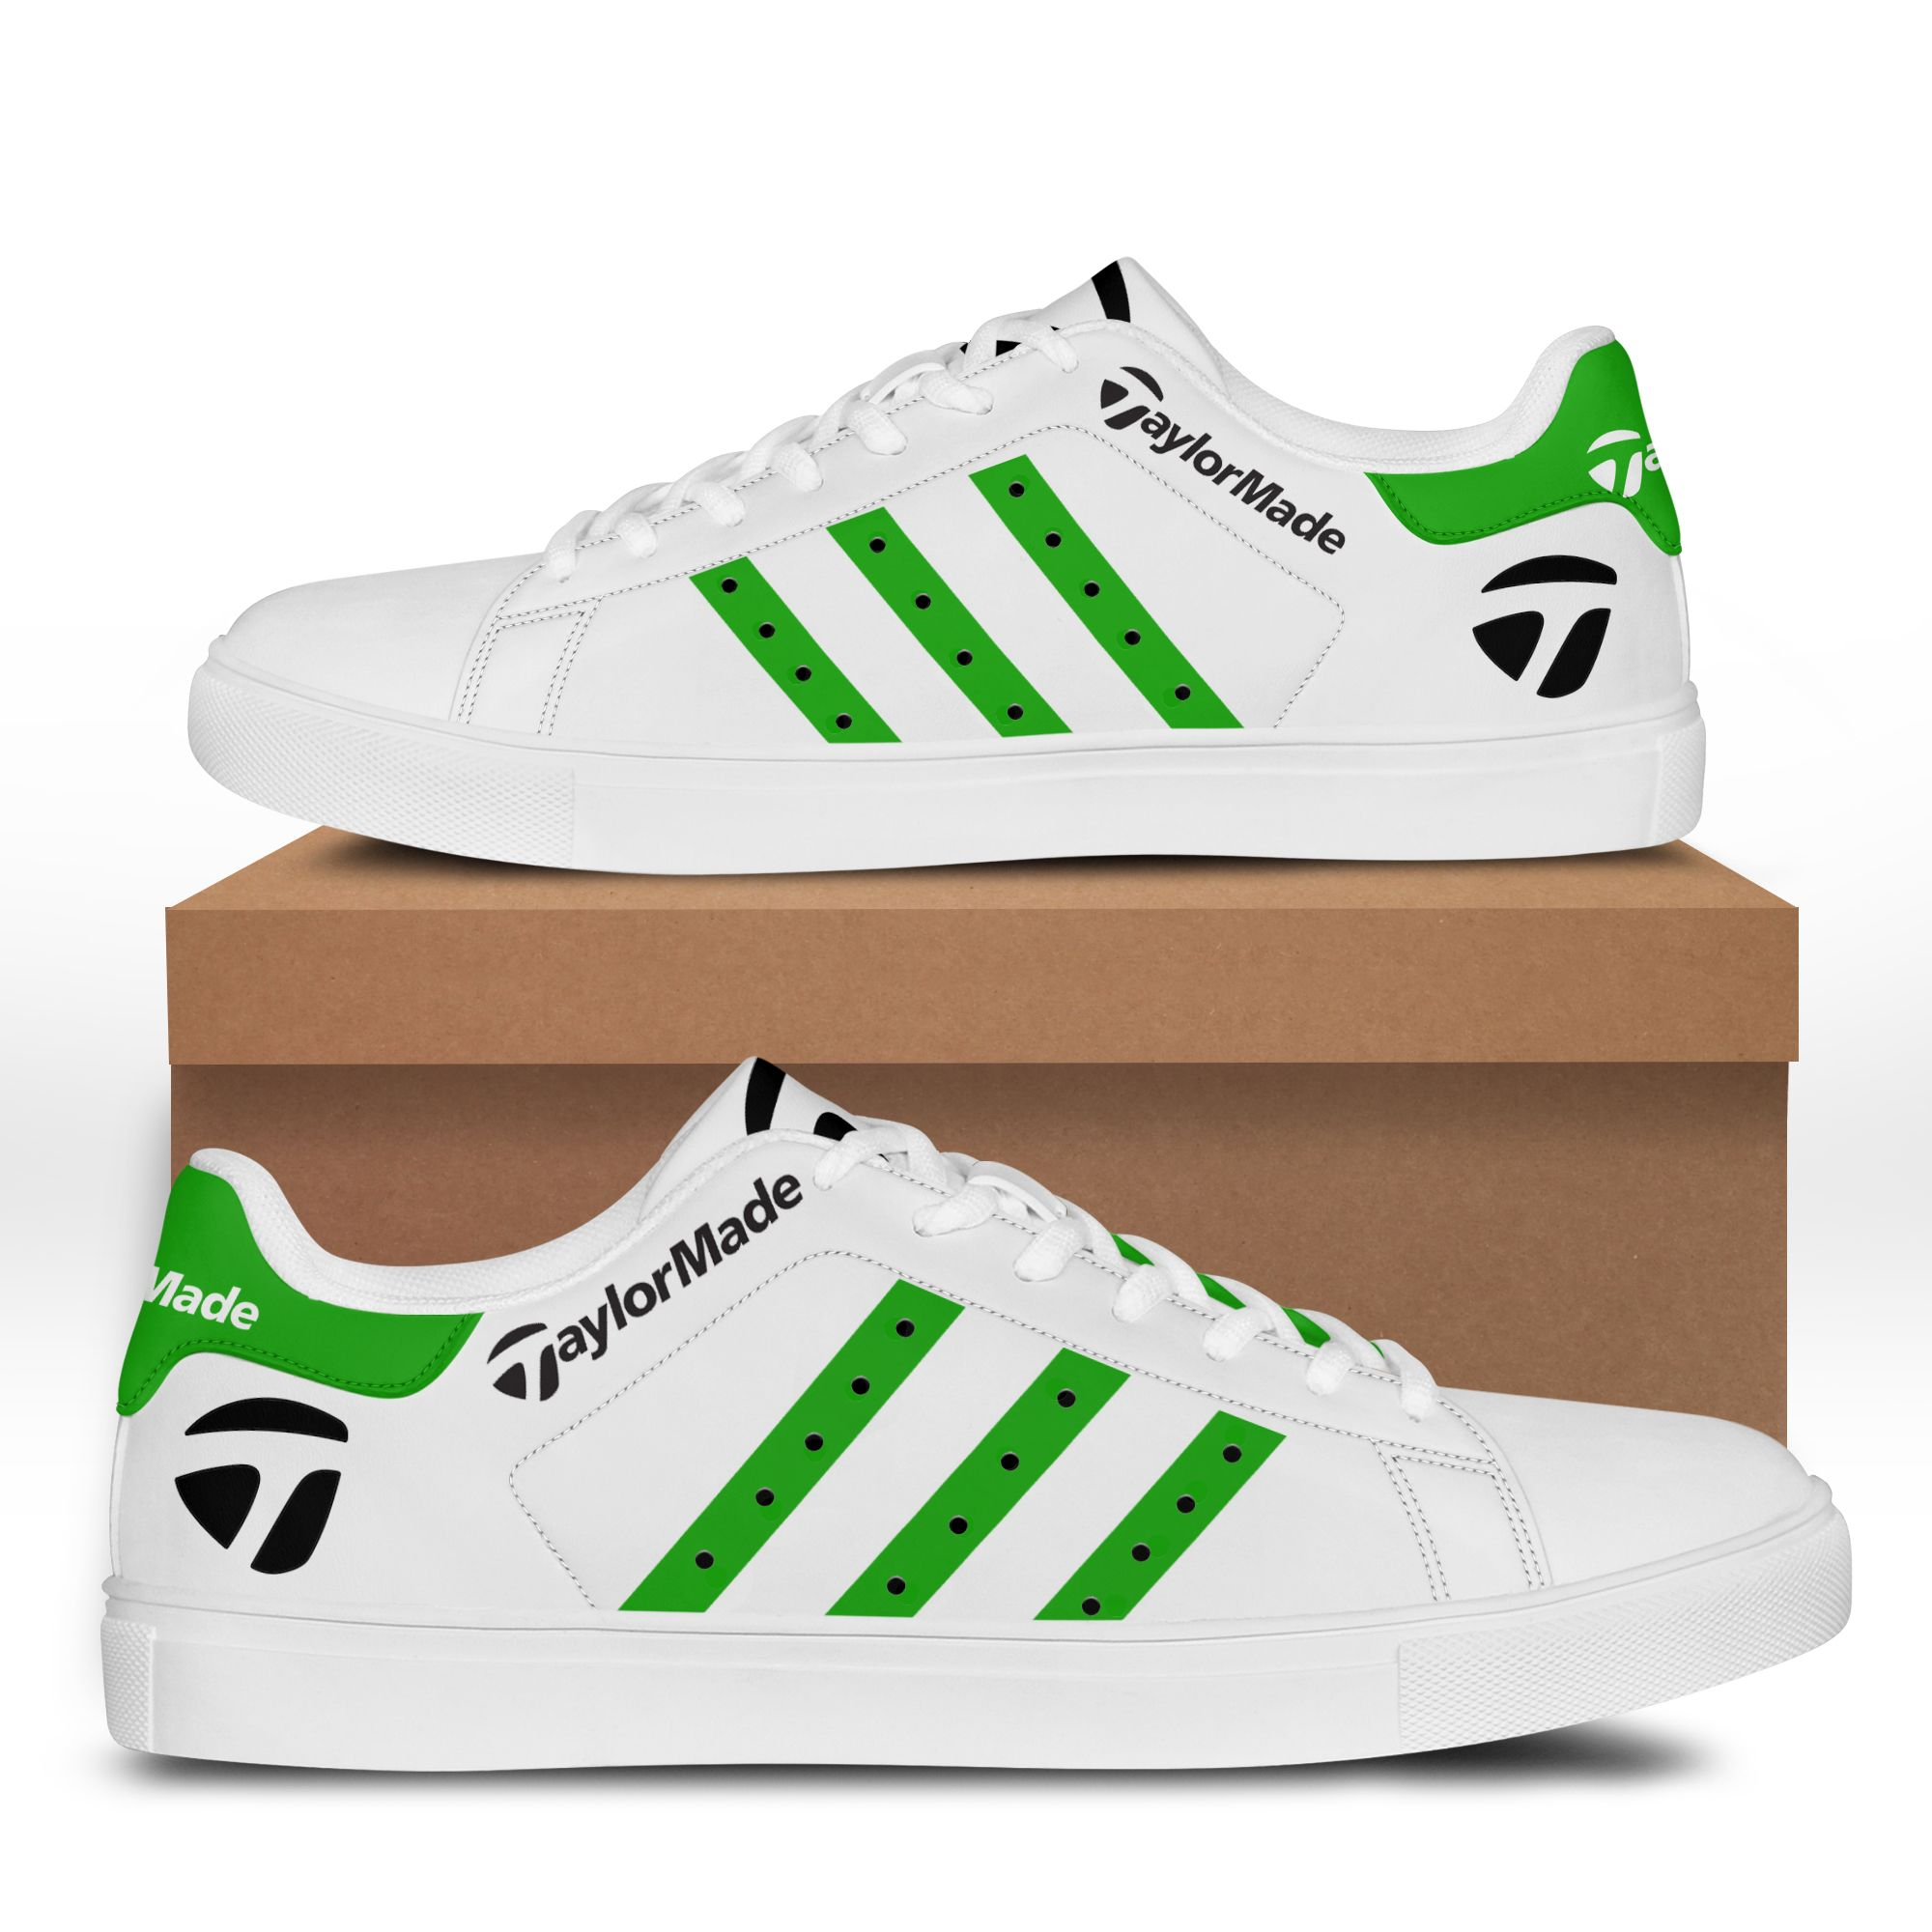 Taylor Made Stan Smith Shoes Sneaker